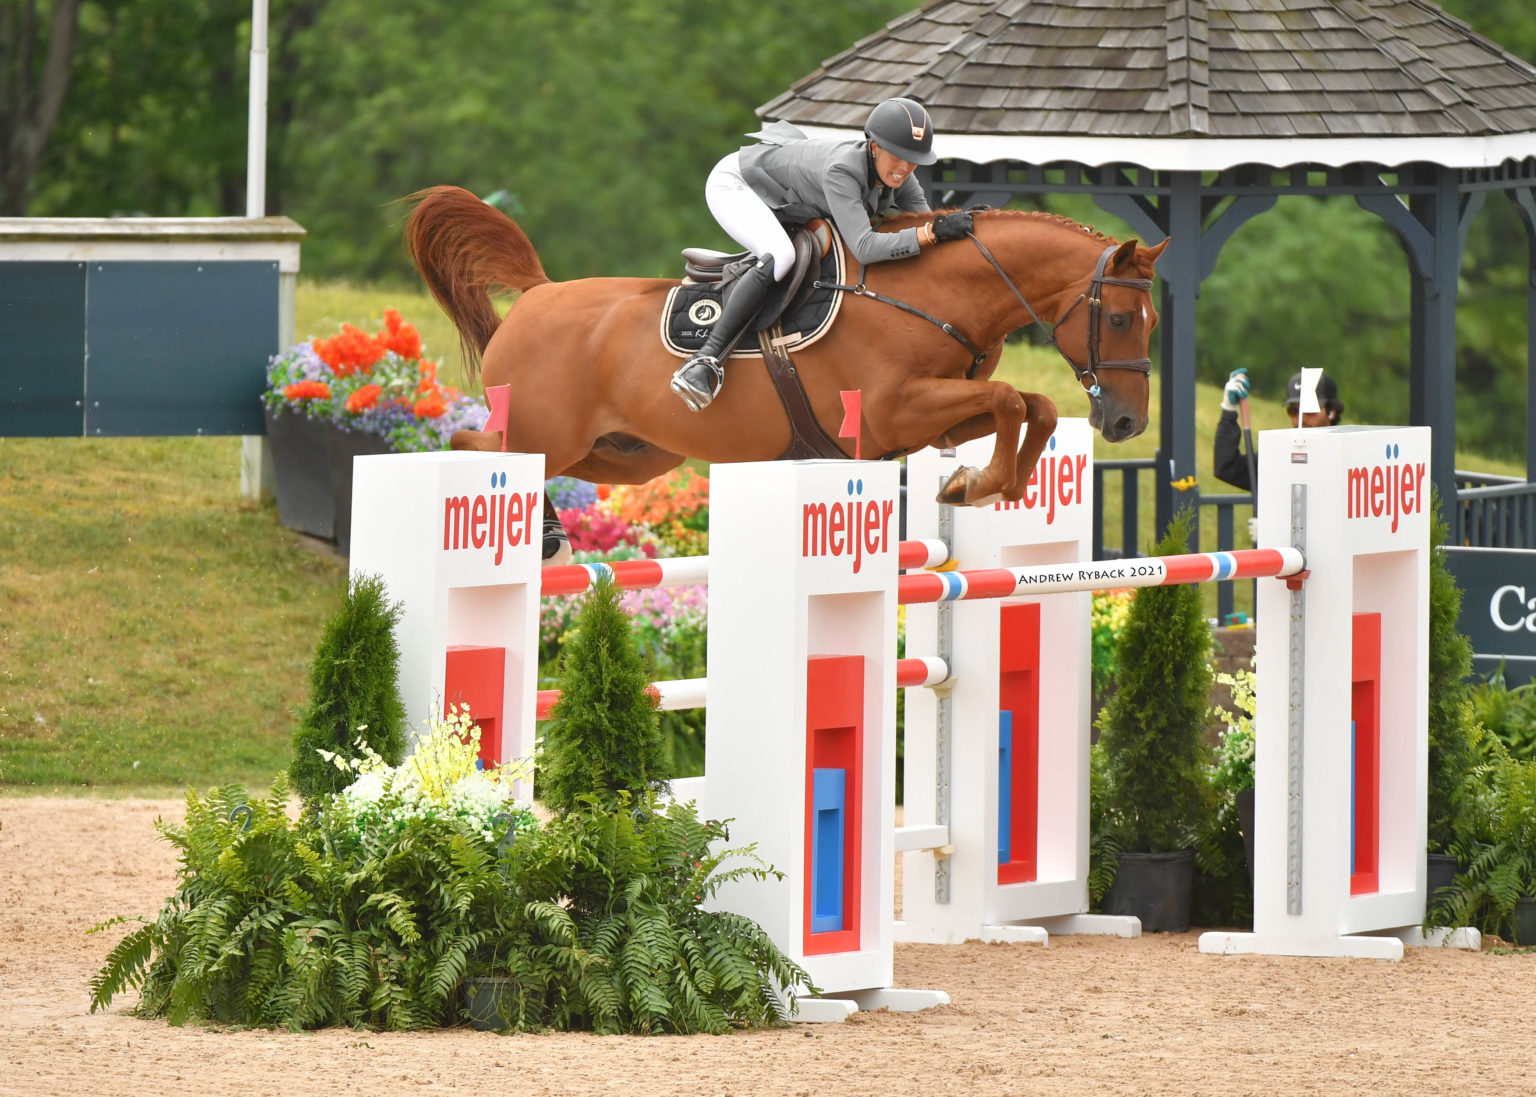 Hattrick for Katie Laurie and Cera Caruso in two-phase speed CSI3*